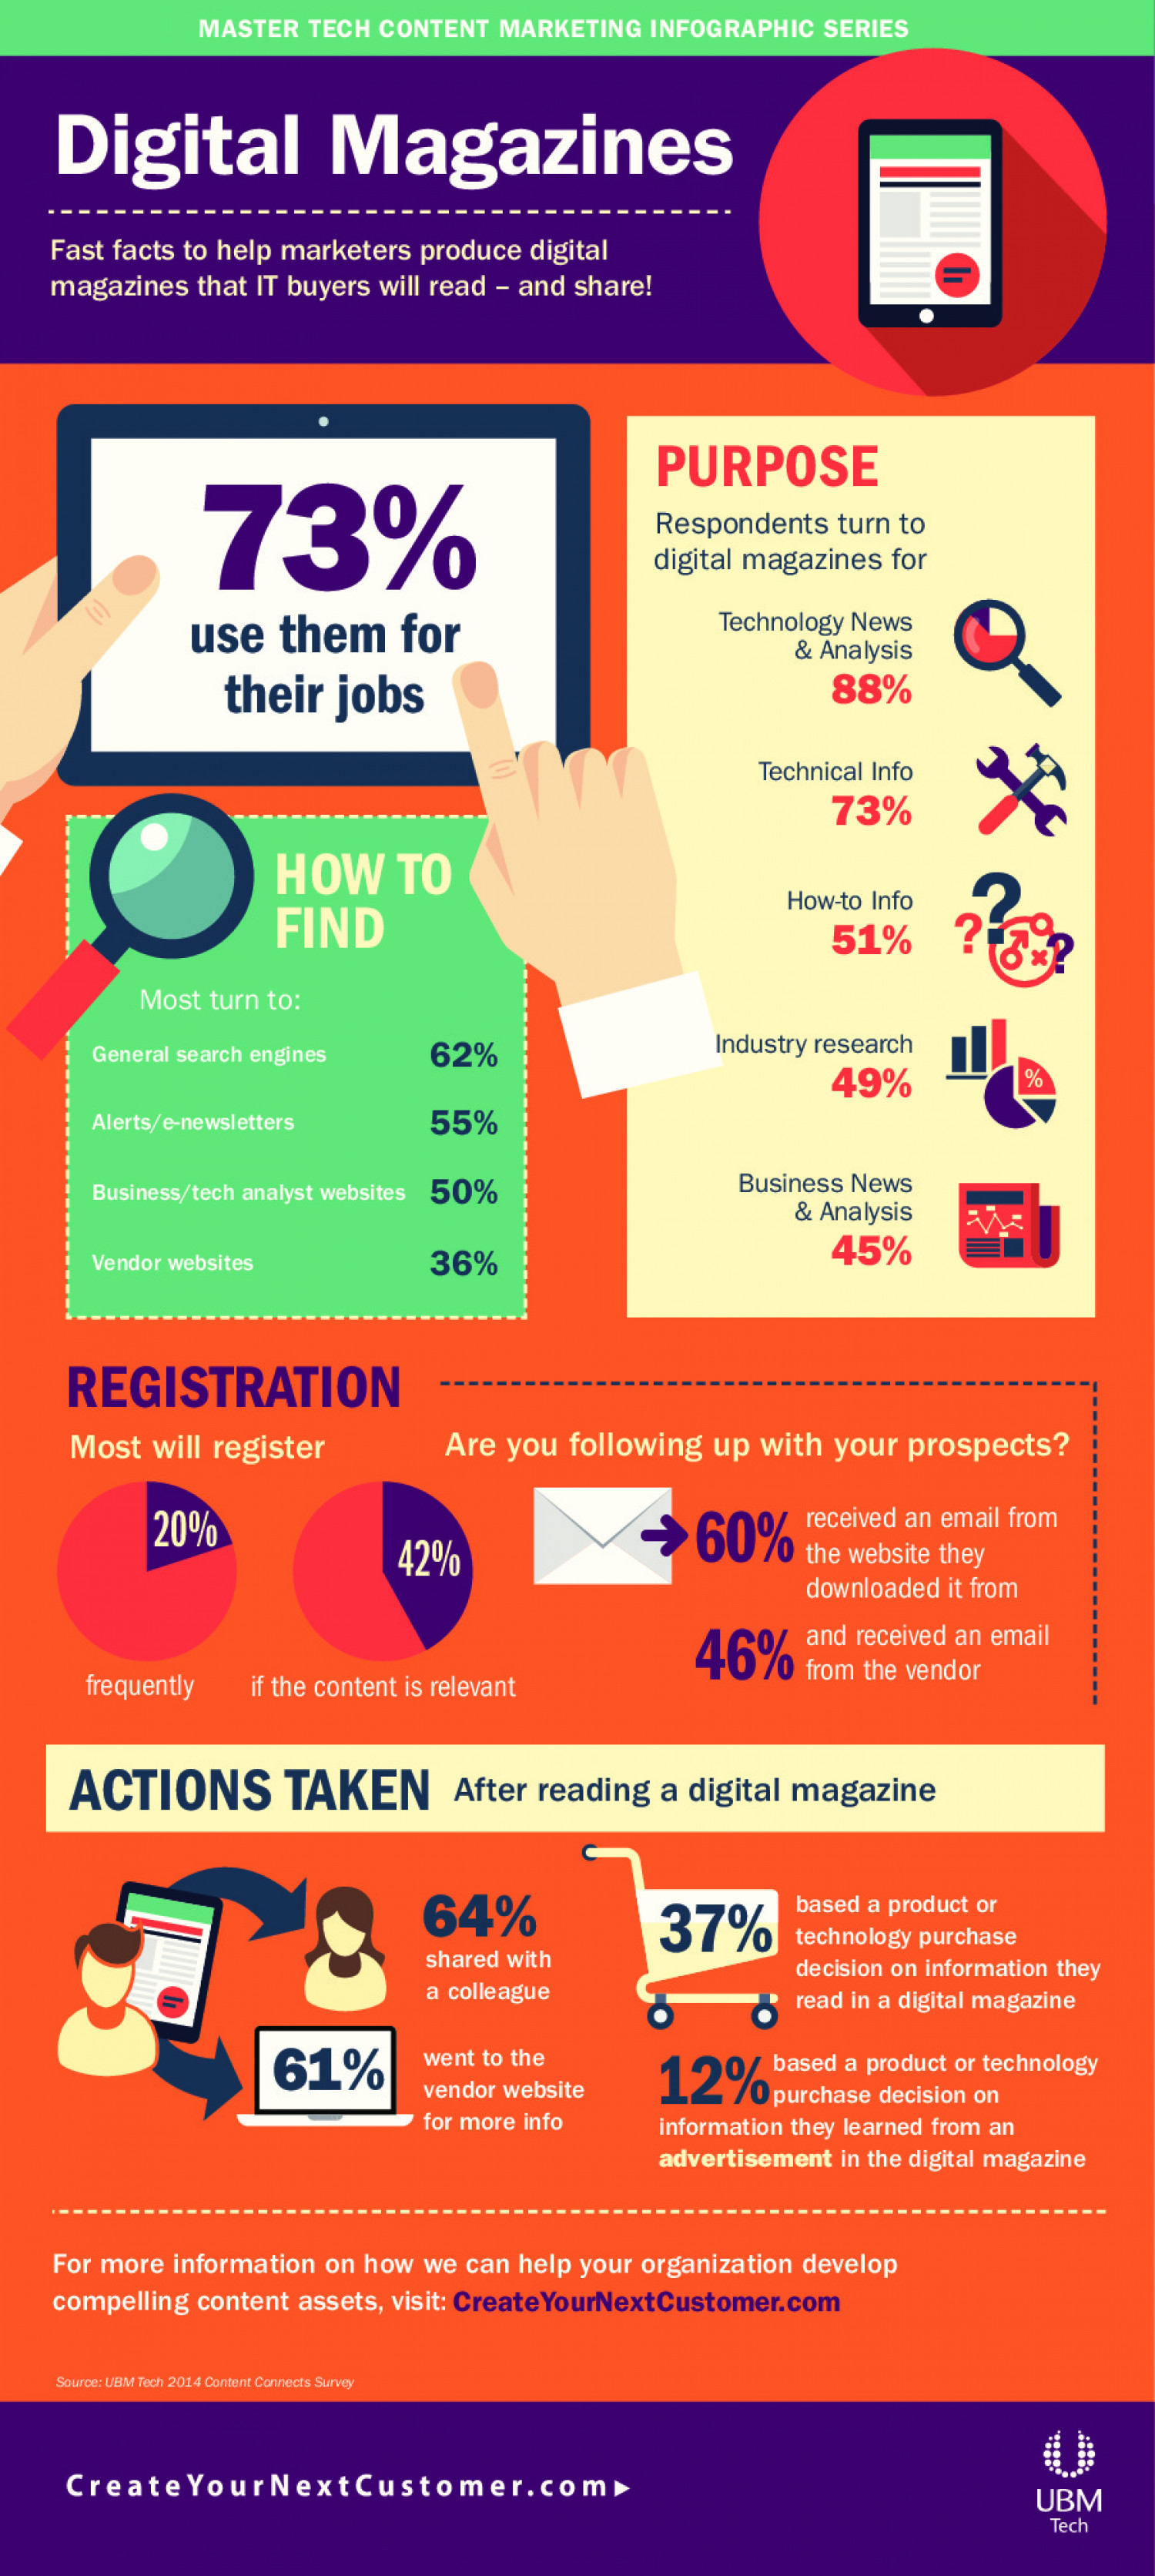 Digital Magazines: Master Tech Content Marketing Infographic Series Infographic